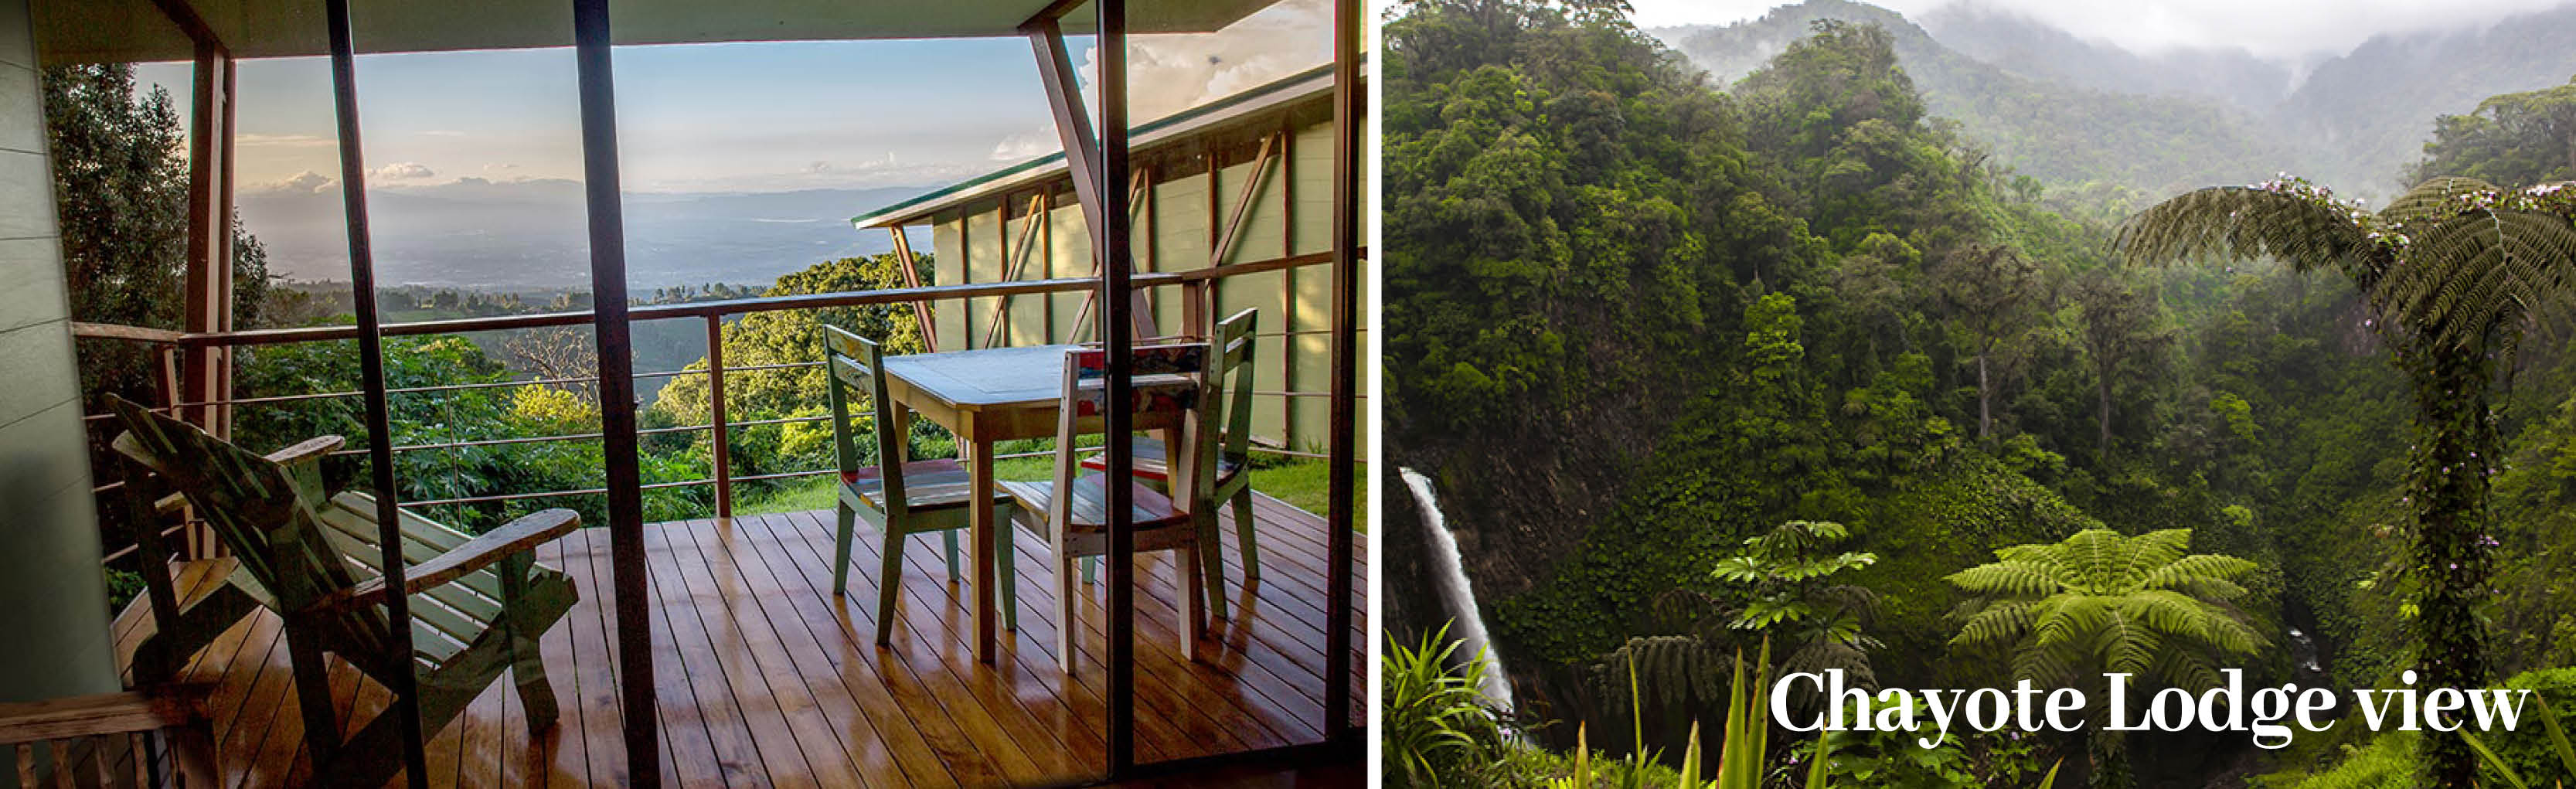 CHAYOTE LODGE VIEW Costa Rica Holiday Offer